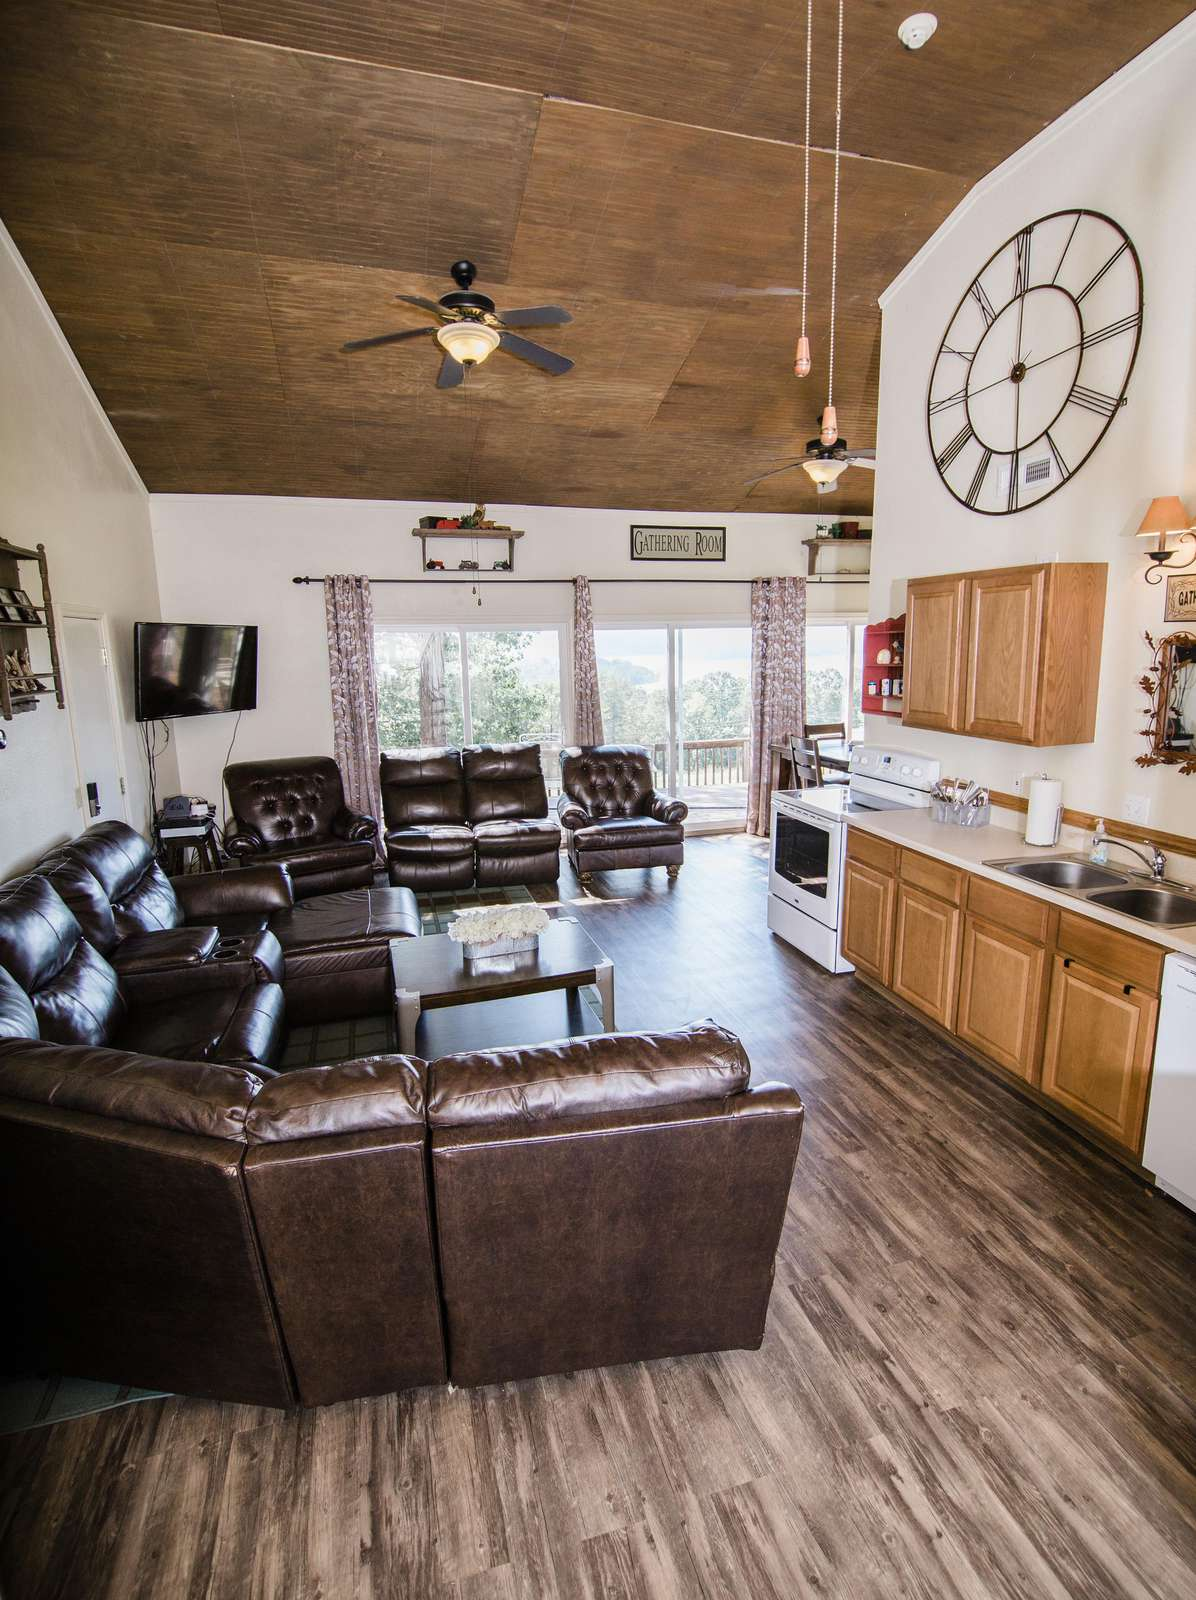 Cabin One: Gathering Room living area has plenty of seating space on the leather furniture.